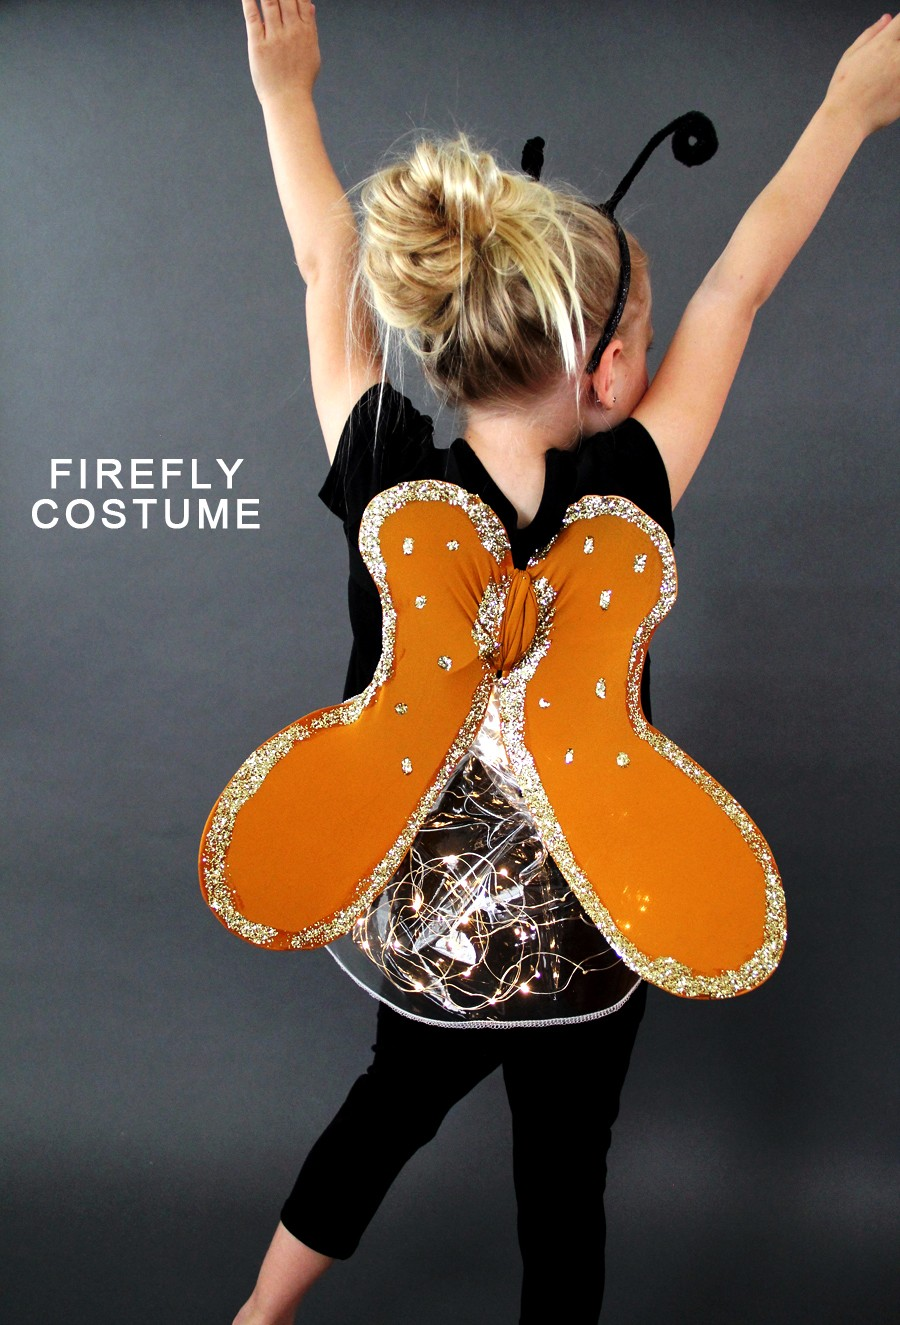 how to make a firefly costume, with a butt that lights up!